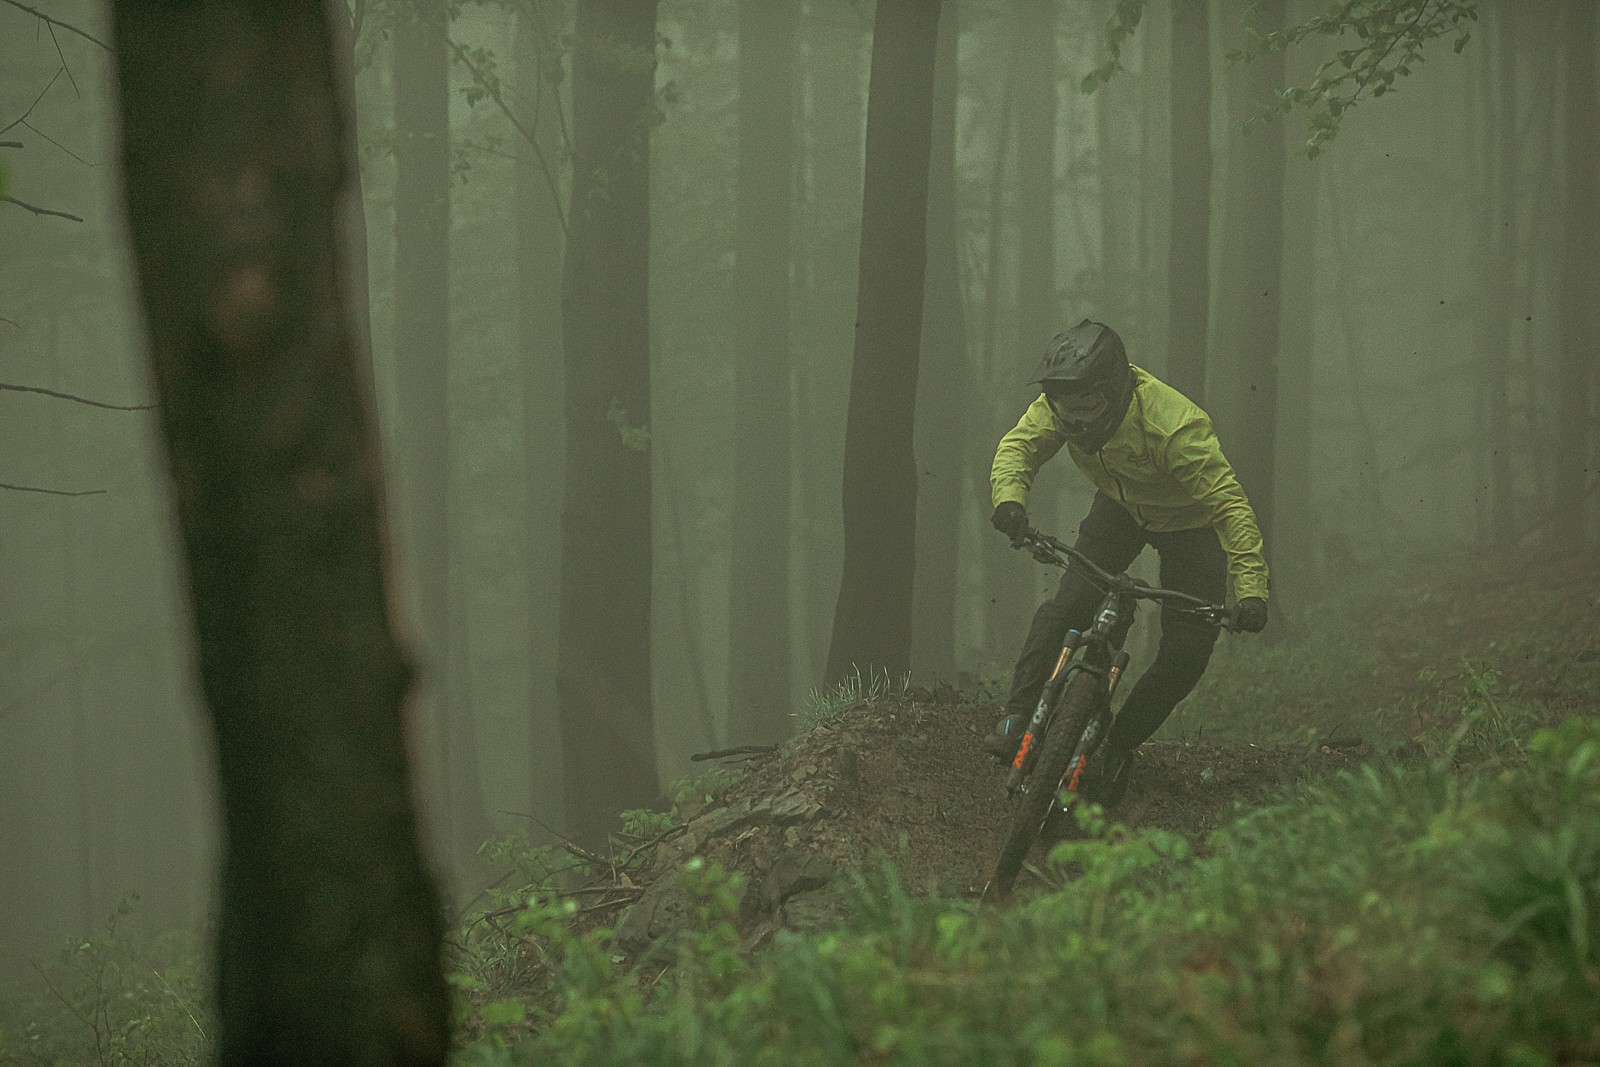 fog - Banan - Mountain Biking Pictures - Vital MTB